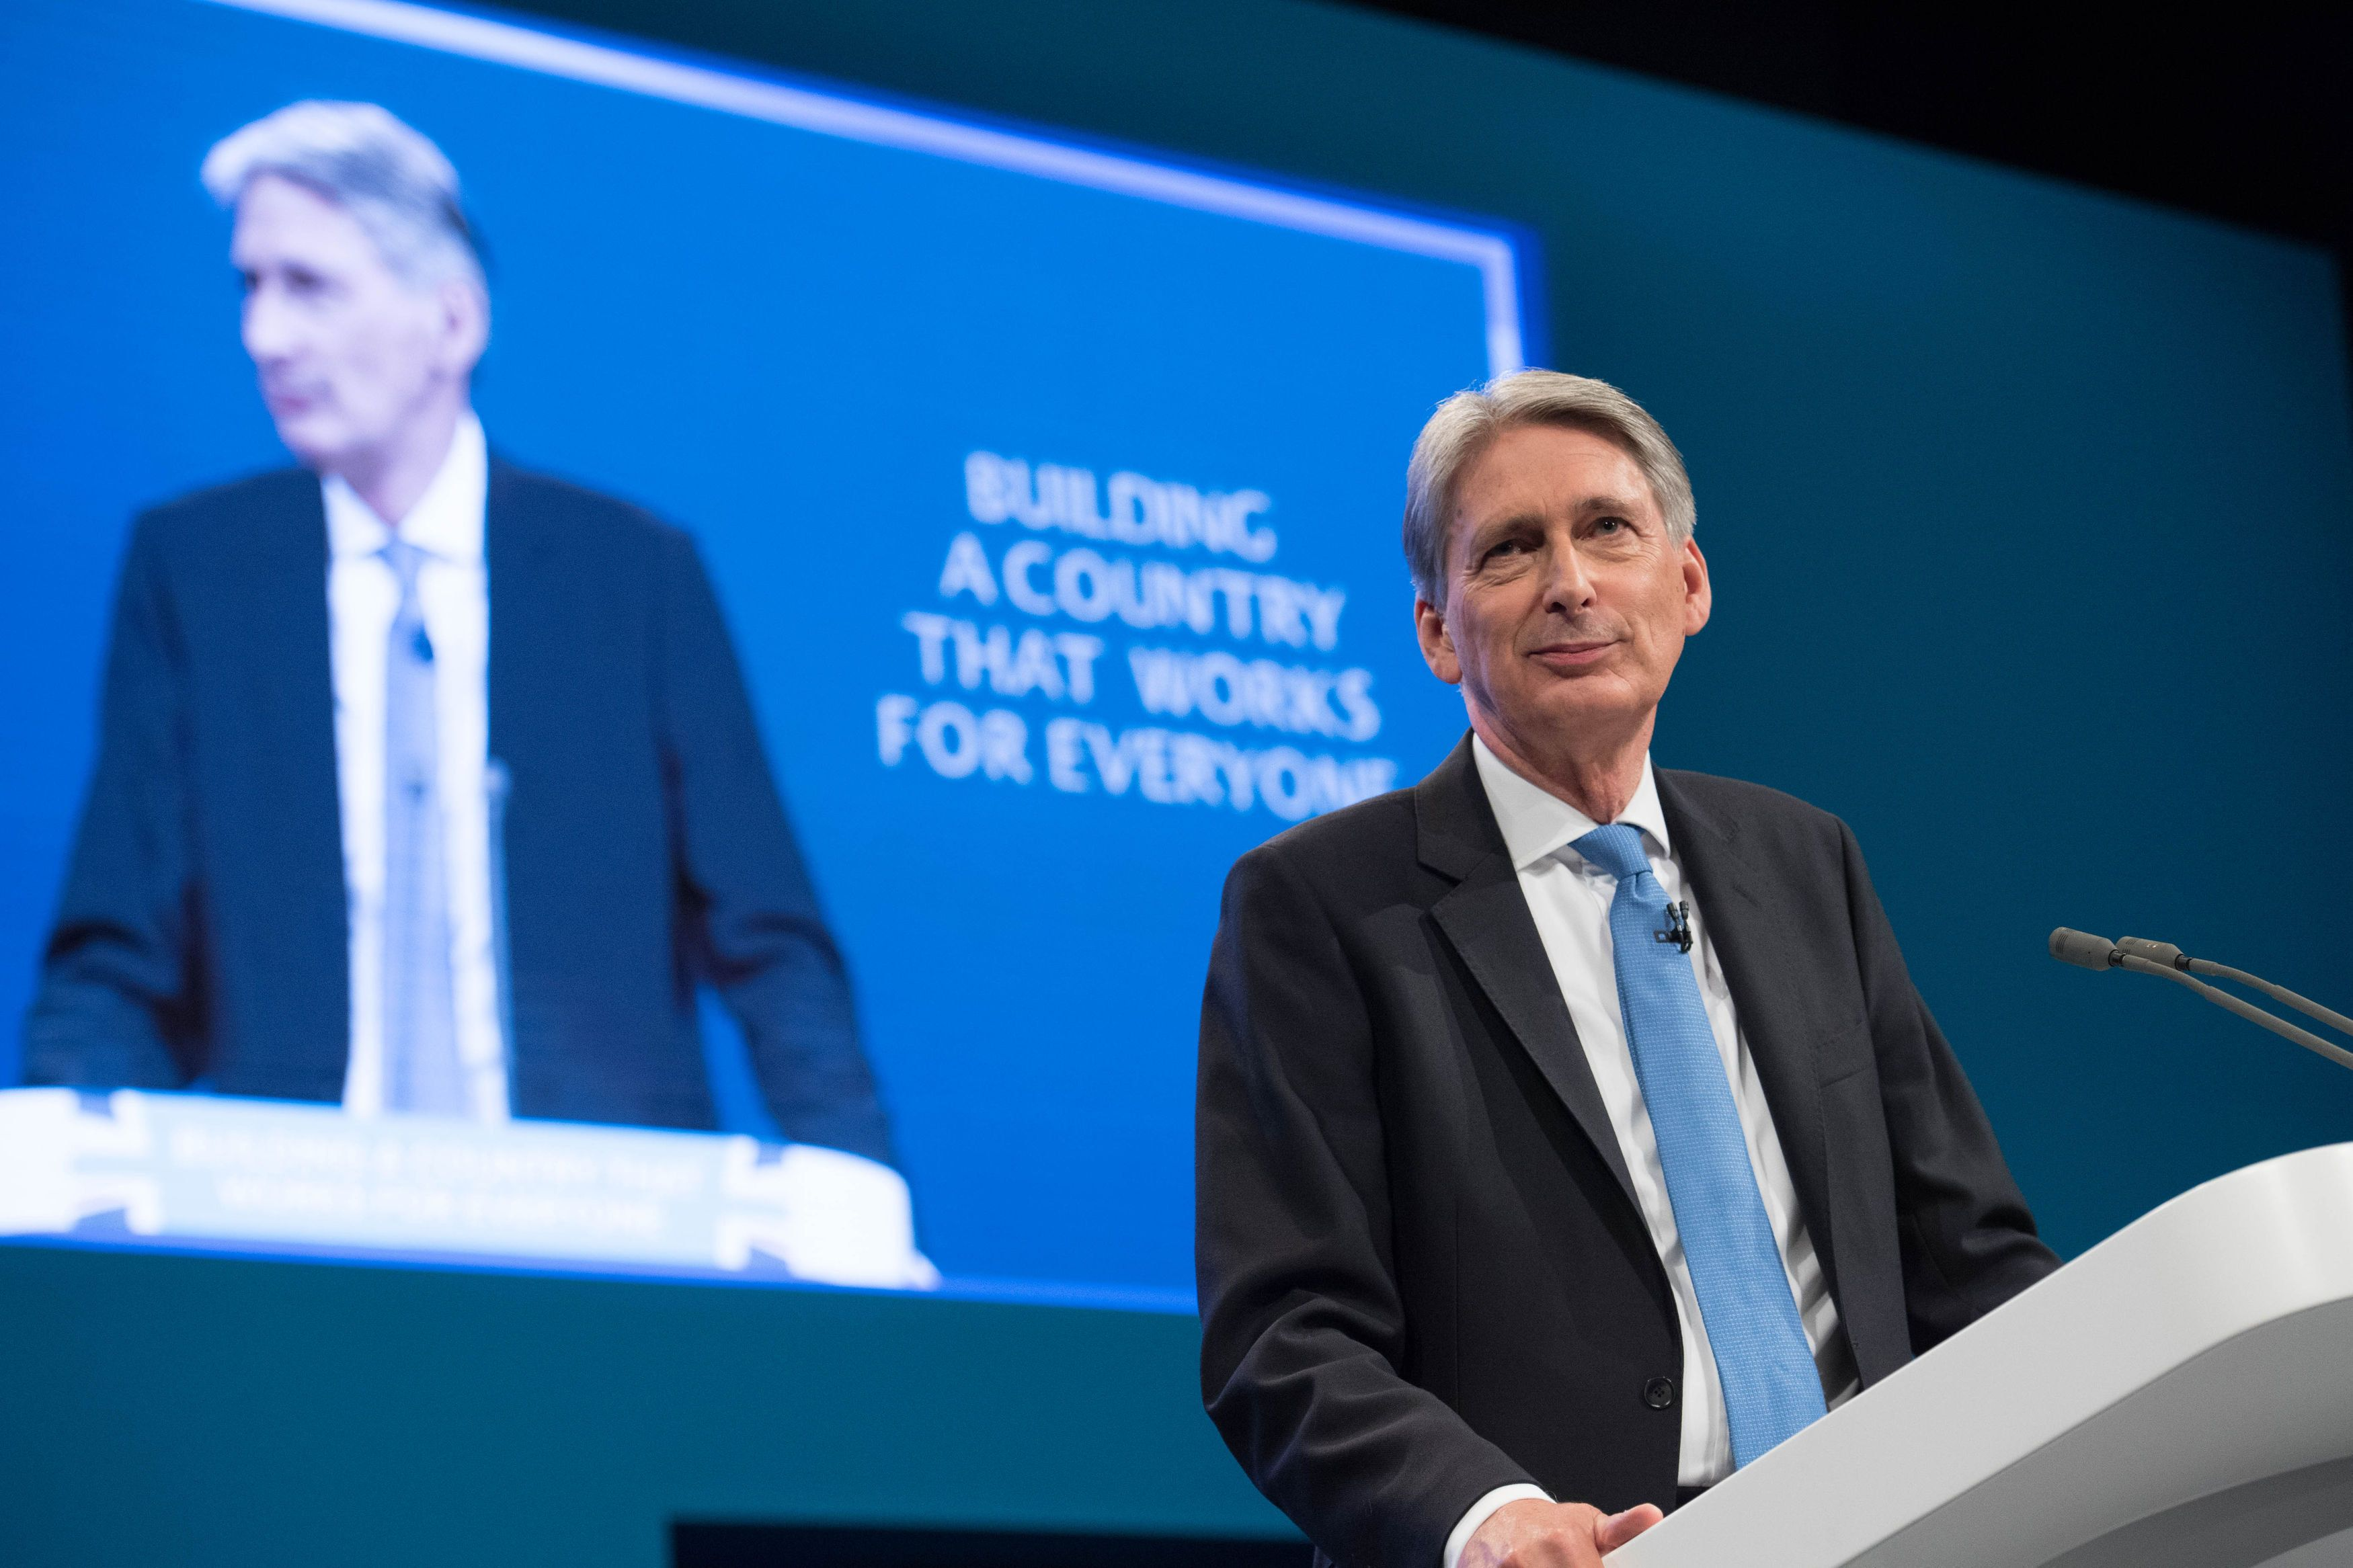 Budget 2017: What the Chancellor WON'T